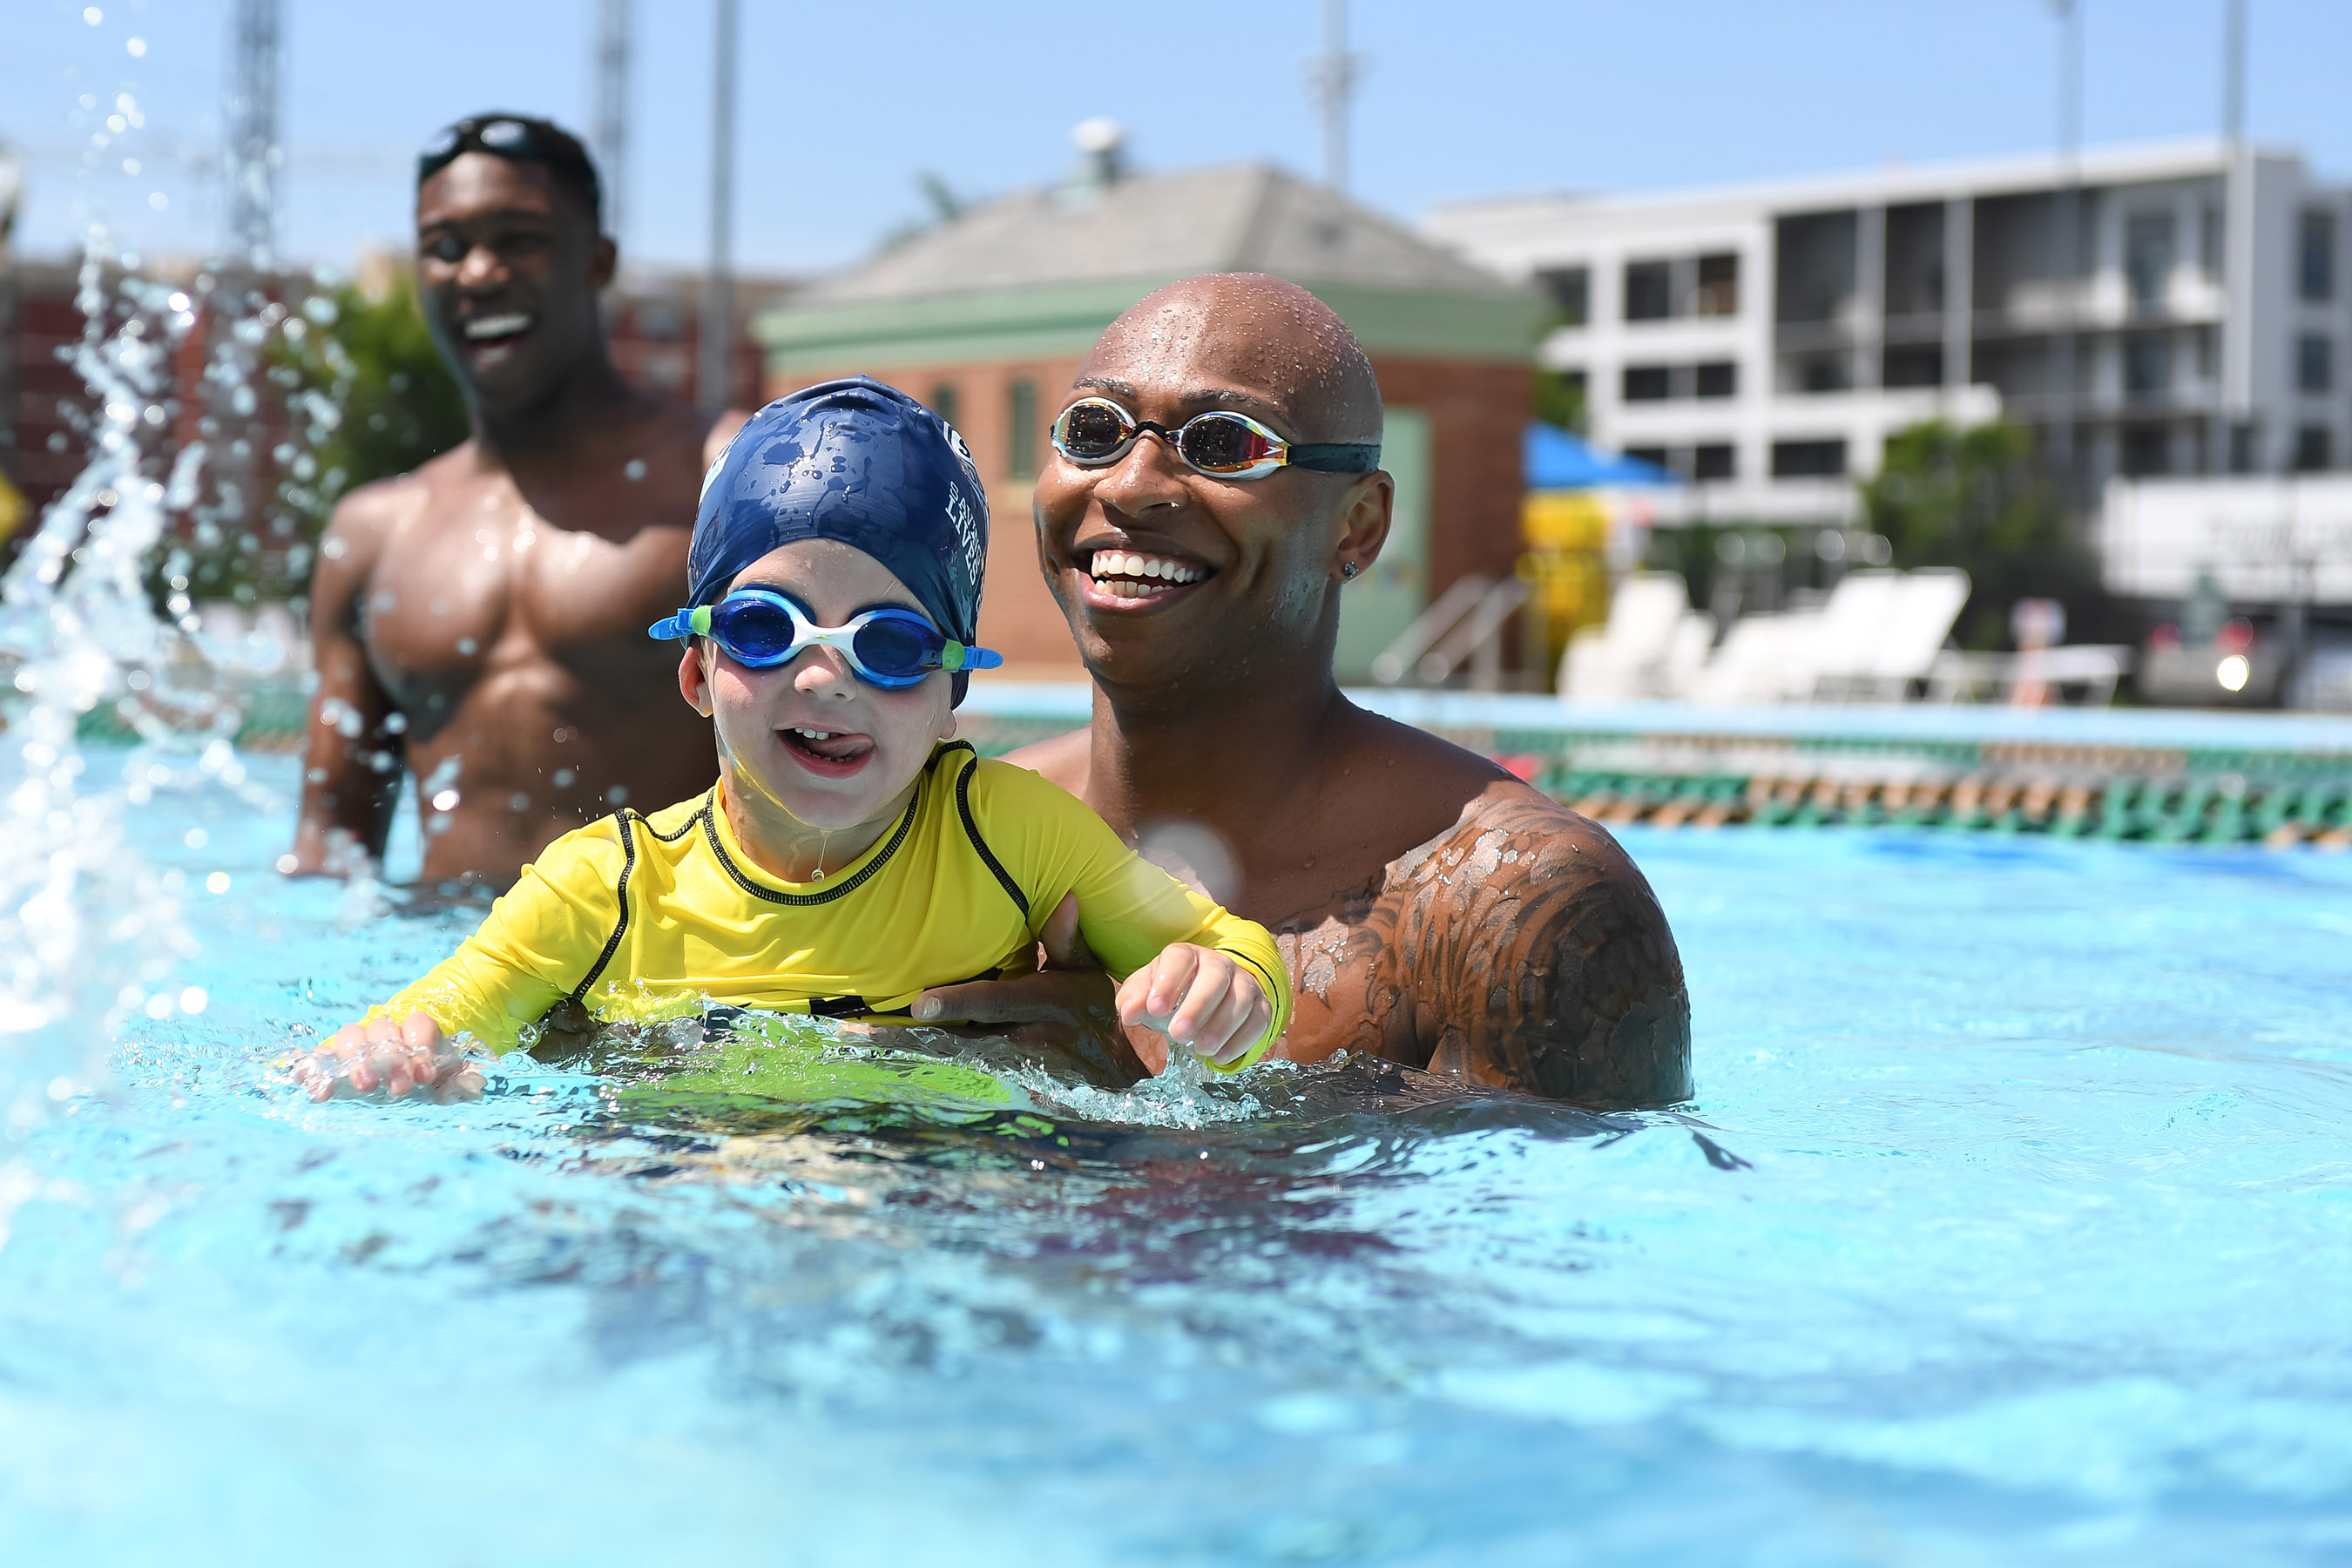 PHOTO CREDIT: © Mike Lewis / USA Swimming Foundation - A child is taught to swim by USA Swimming Foundation ambassador and Olympic gold medalist Cullen Jones along with Sports Illustrated Sports Kid of the Year, Reece Whitley as part of USA Swimming Foundation's Make a Splash initiative.